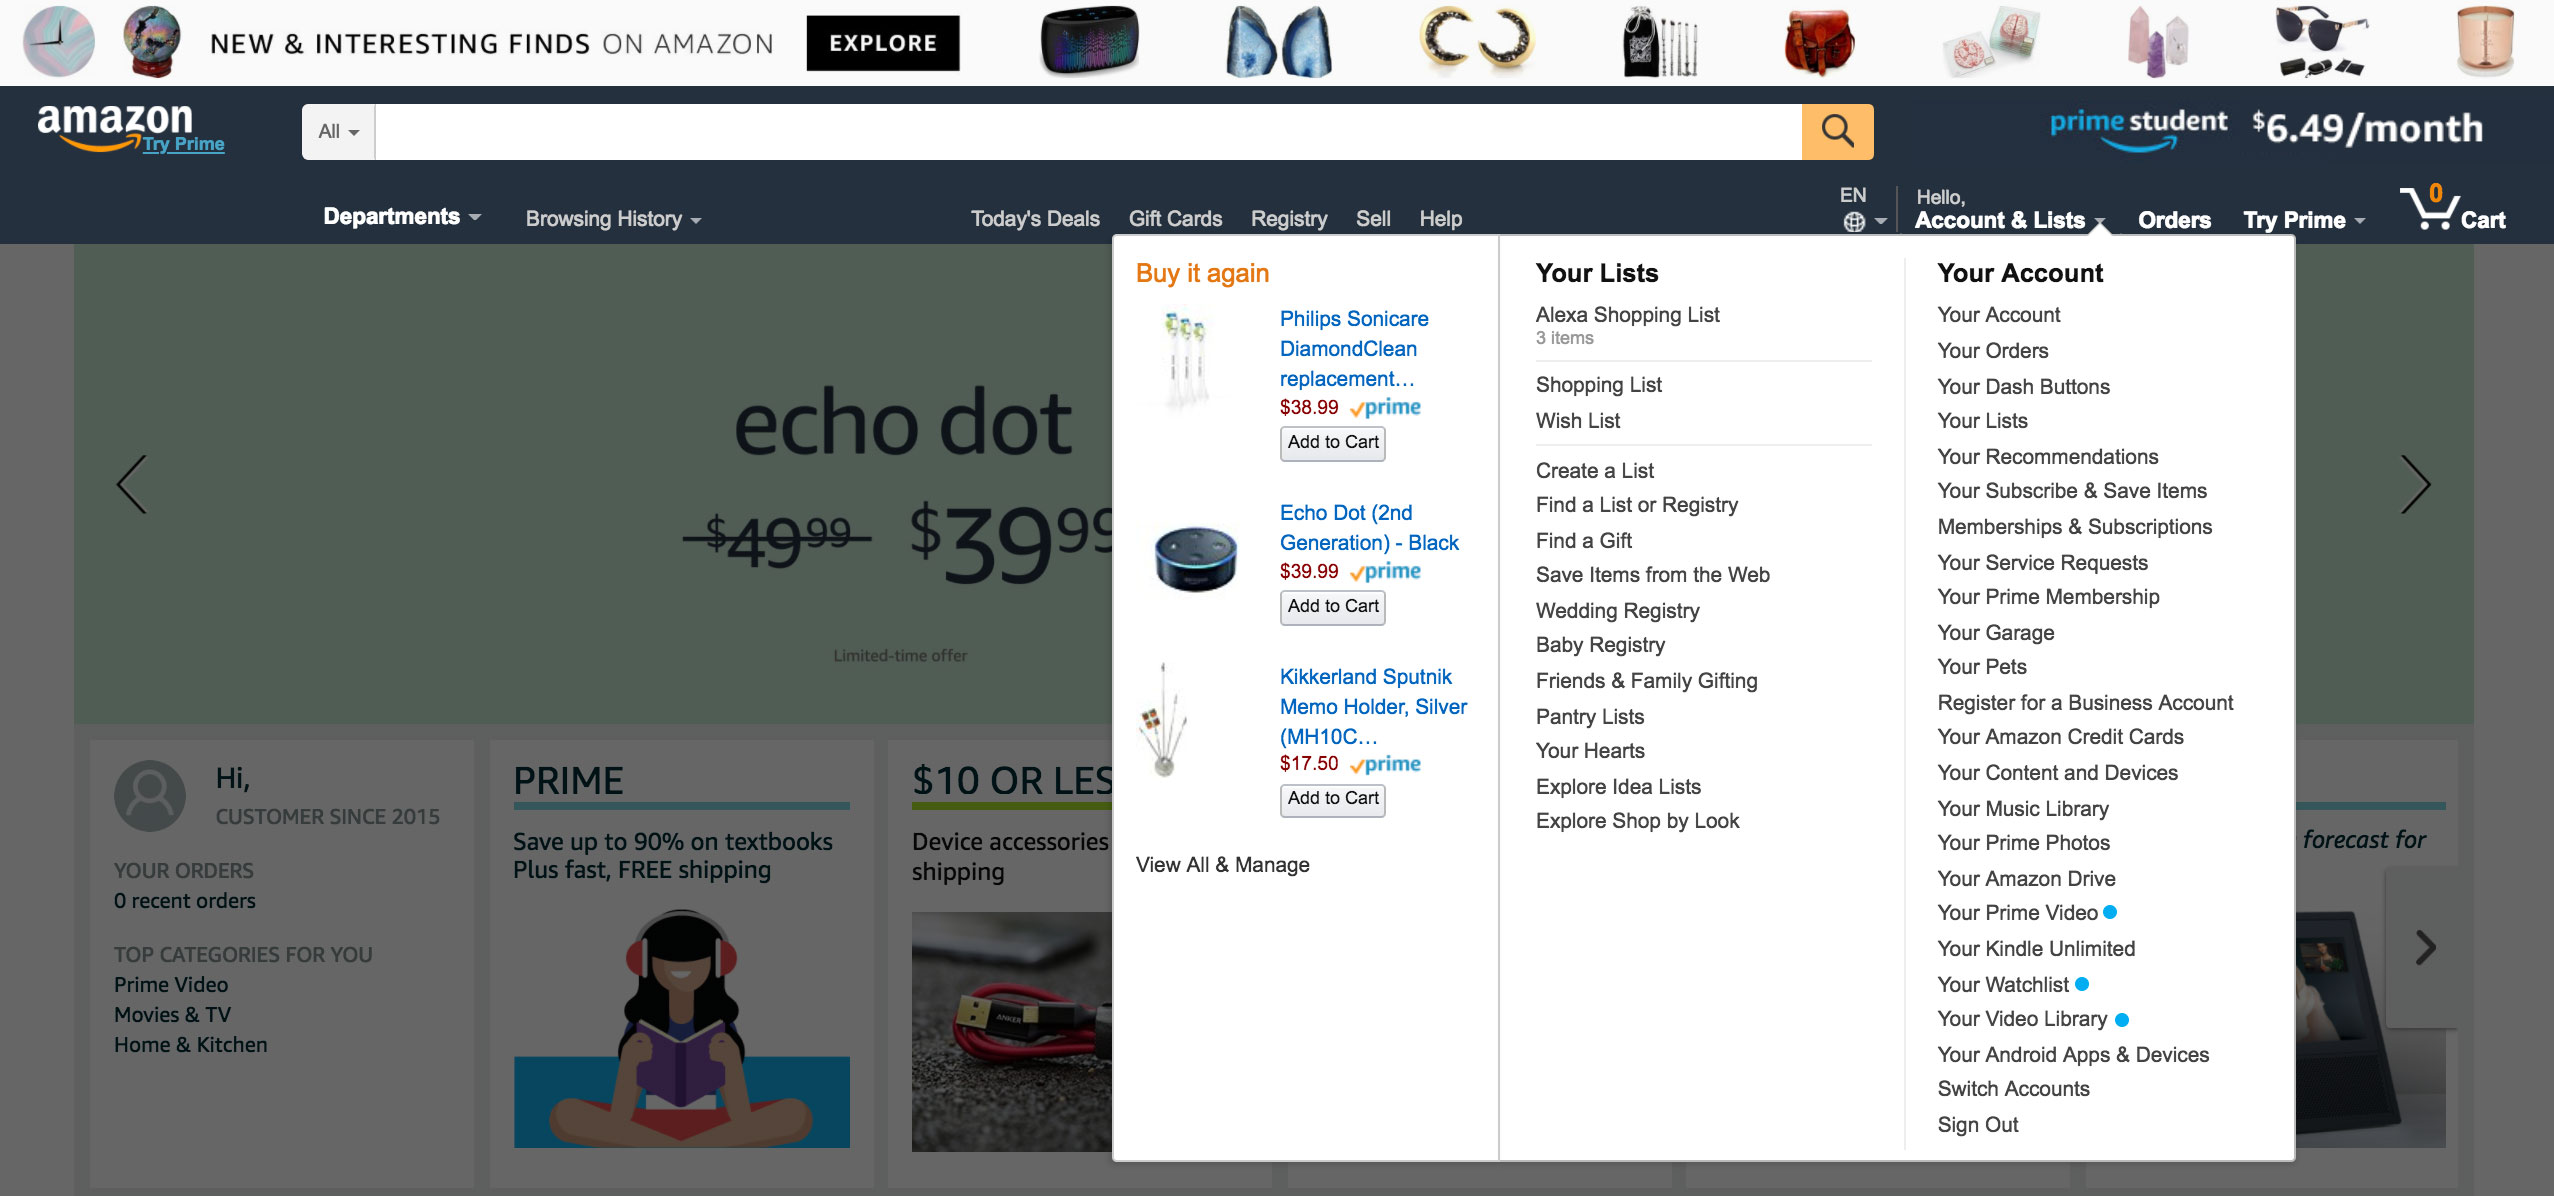 A screenshot of Amazon's account dropdown list that shows a laundry list of confusing paths to take